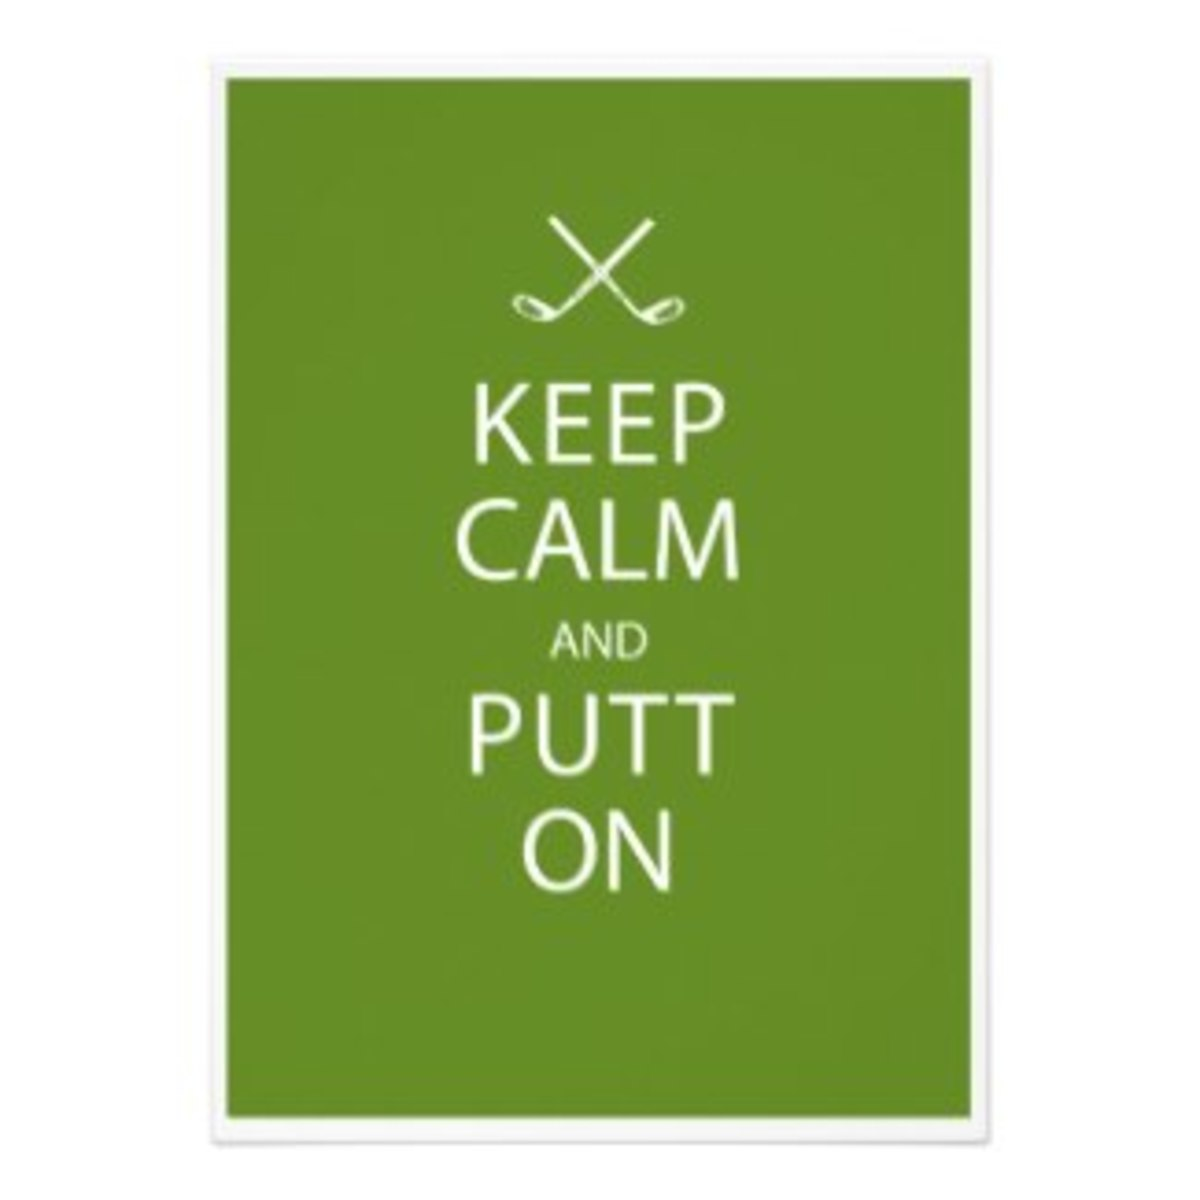 Keep Calm & Putt On. Why worry about that big birthday... as long as you're on the right side of the grass!?